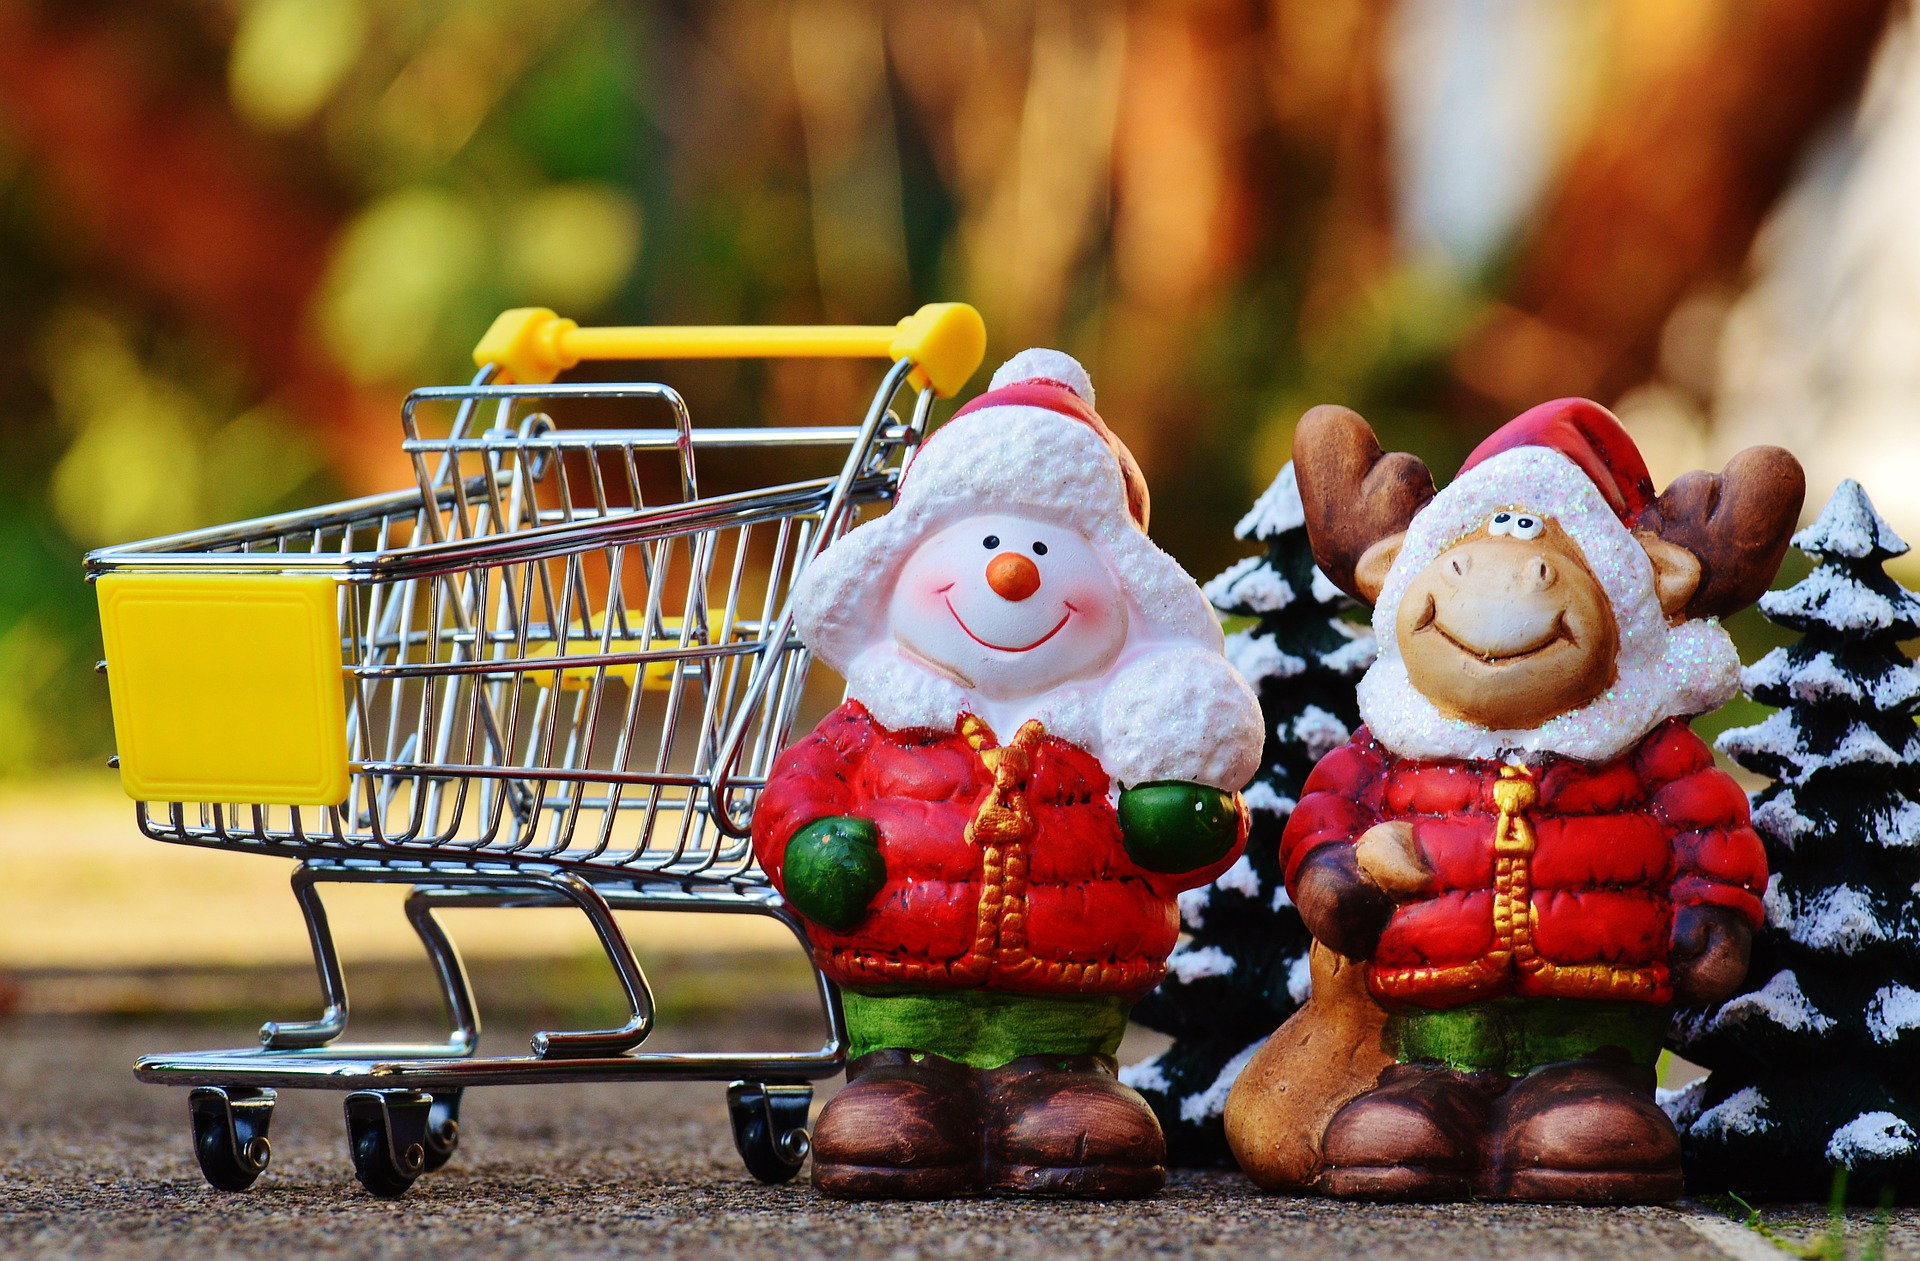 We are open every day for shopping until 4:00pm on the 24th of December, Christmas Eve